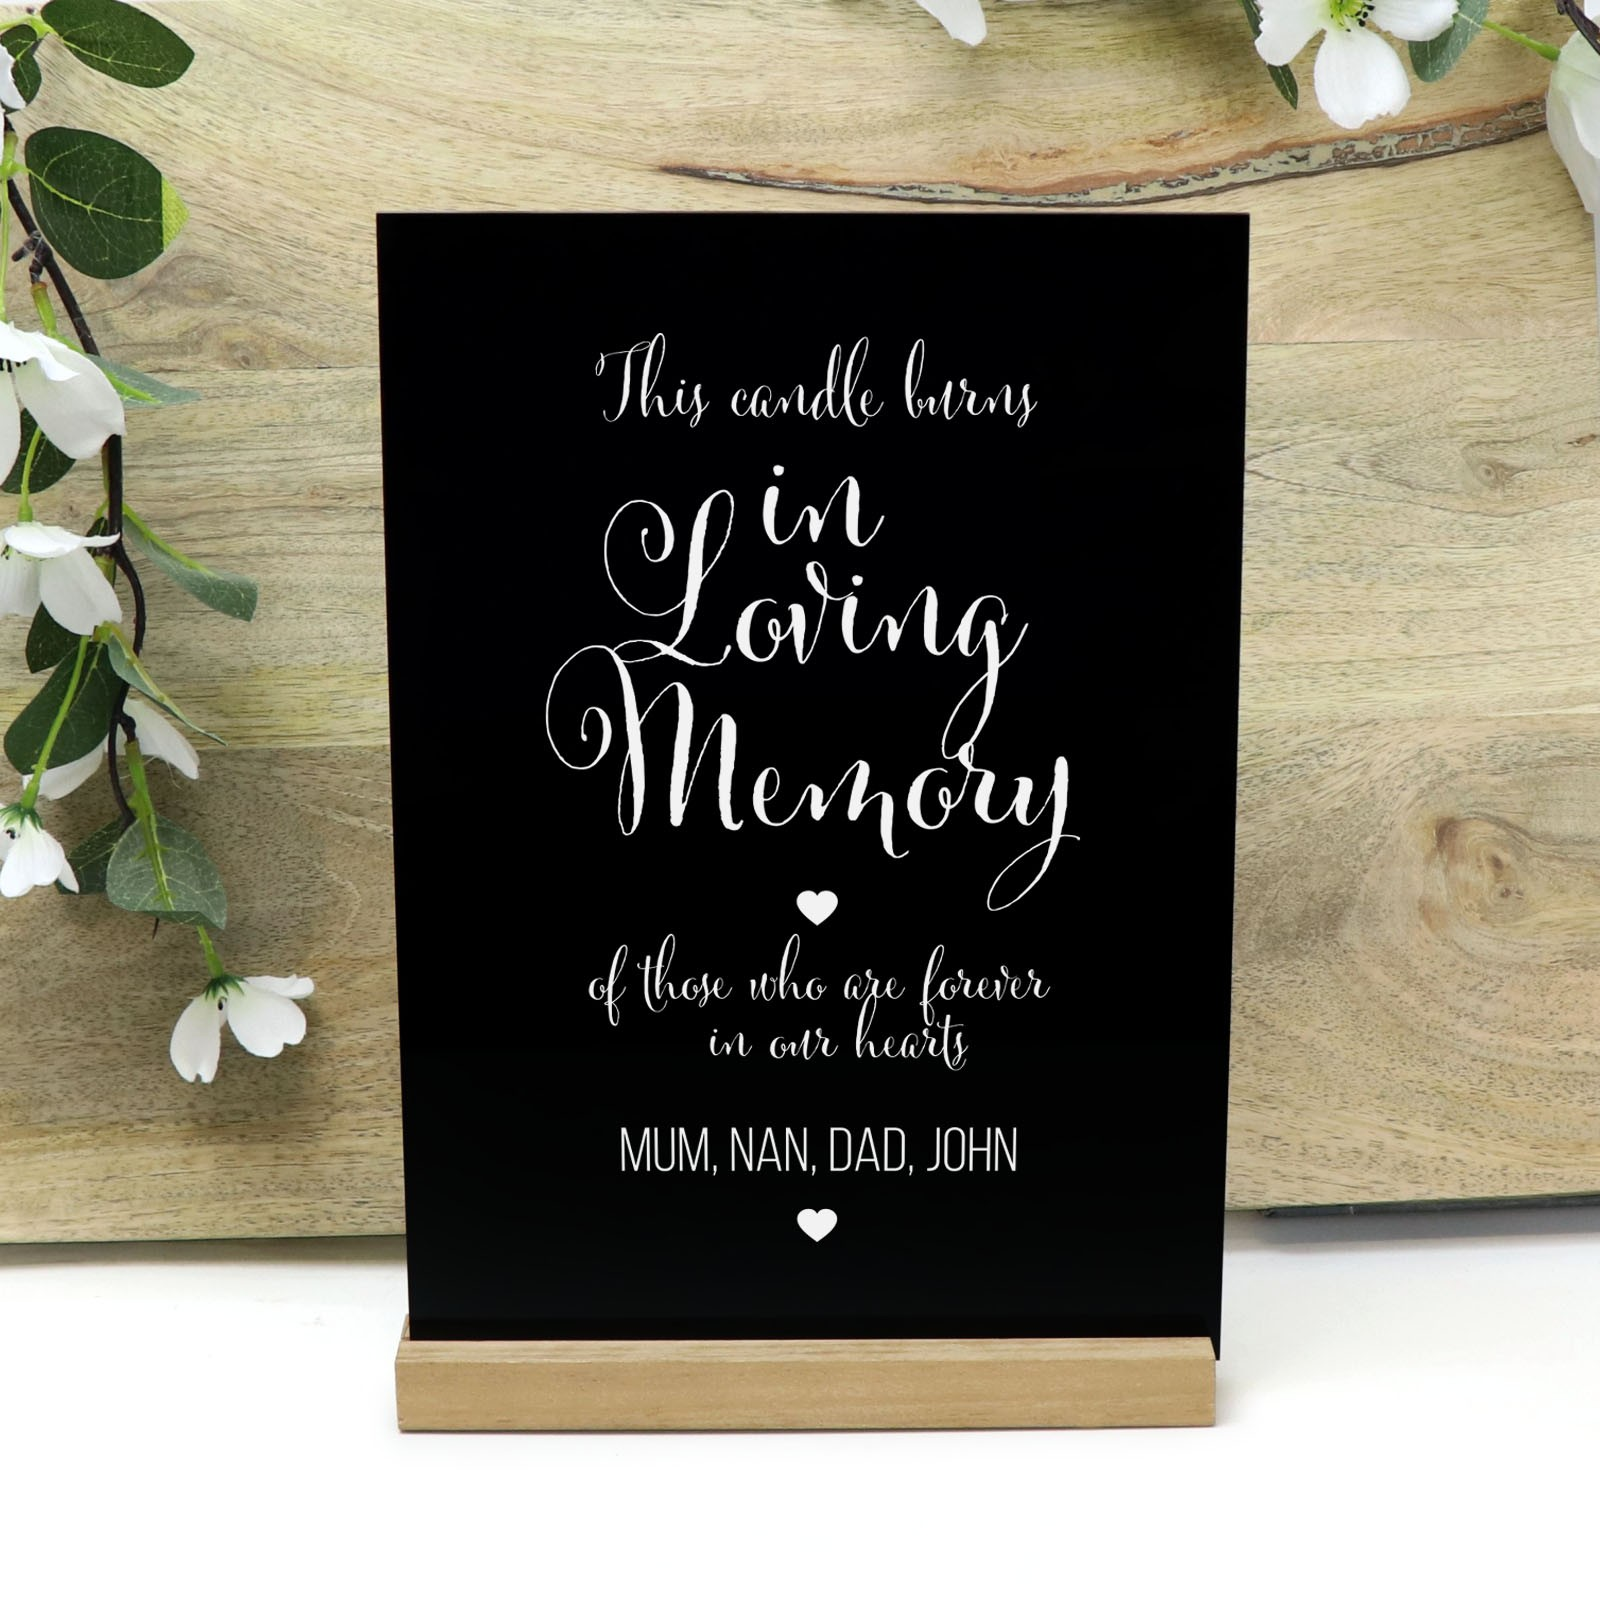 Wedding Remembrance Personalised Black Gloss Acrylic Sign With